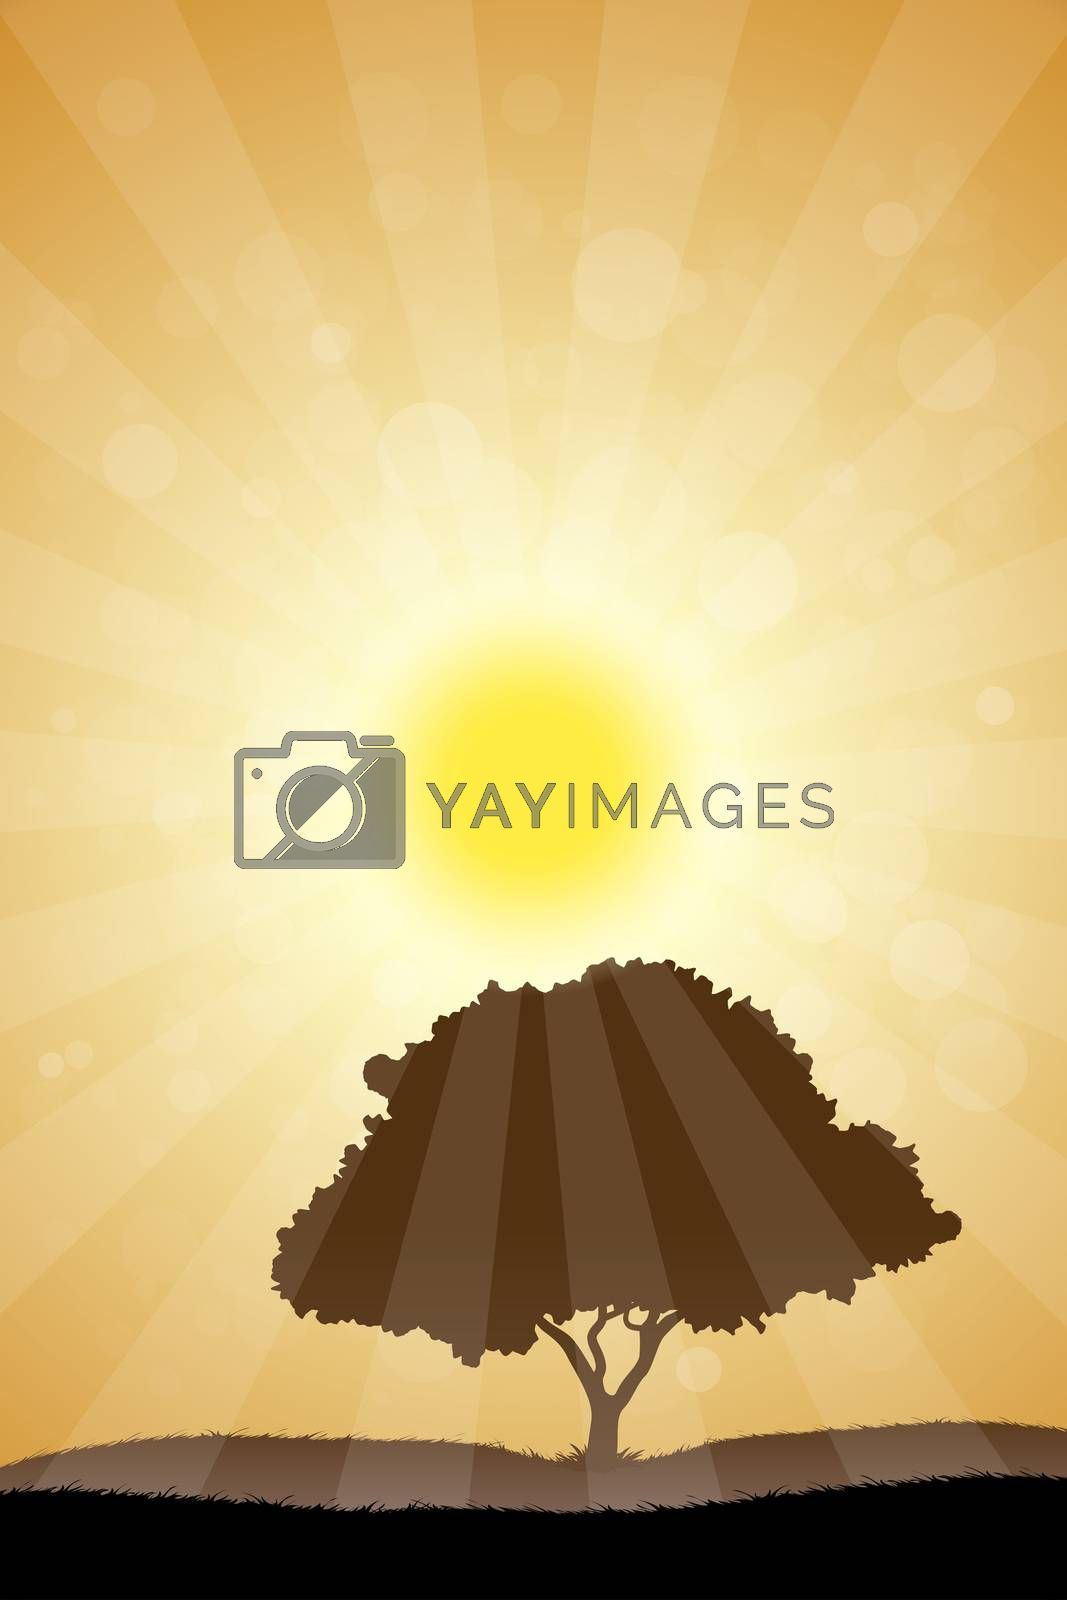 Landscape with Tree by WaD